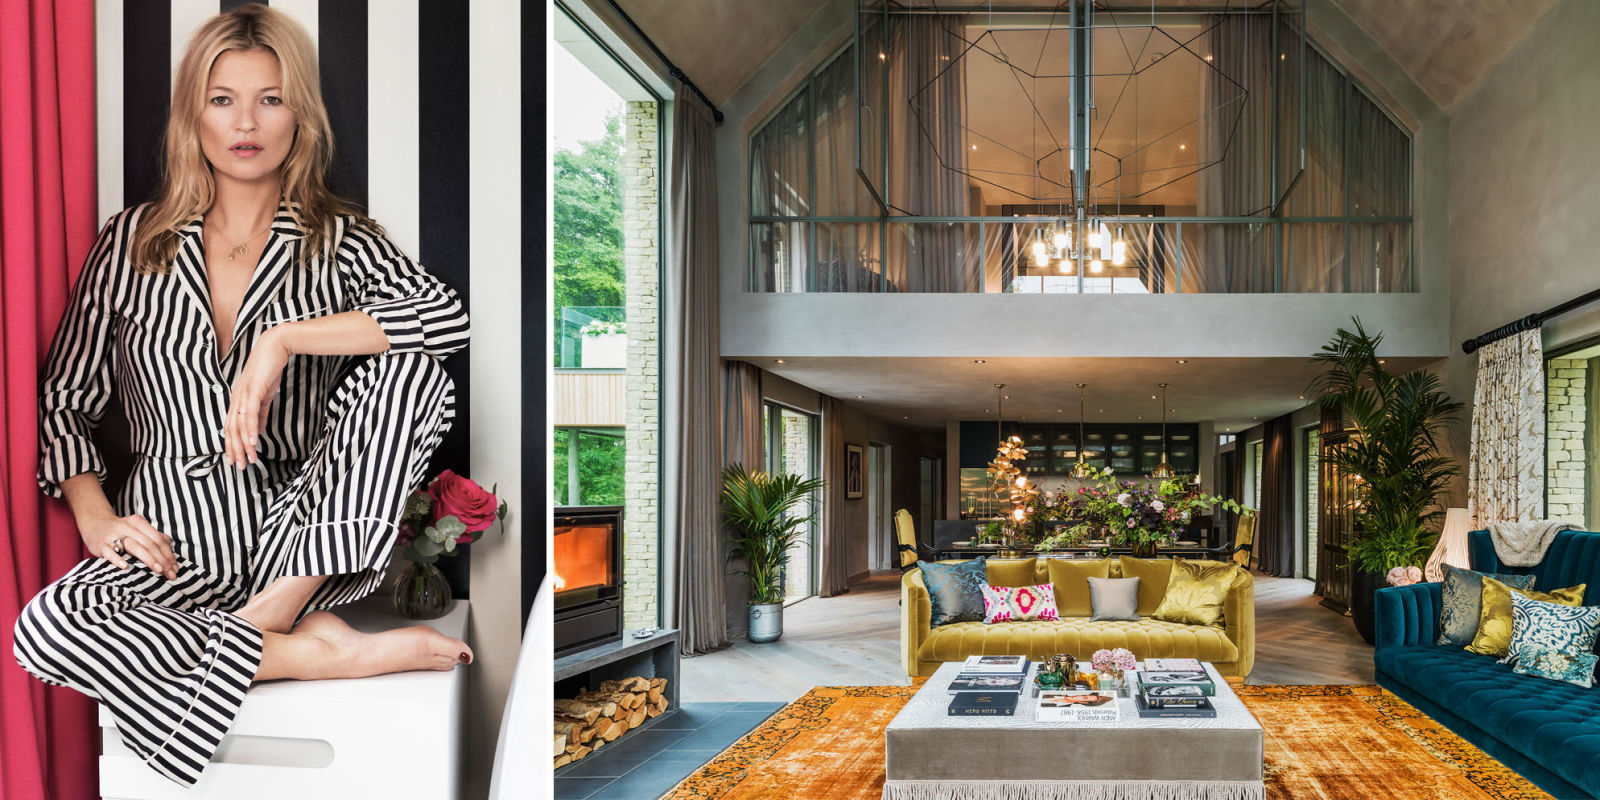 http://www.harpersbazaar.com/culture/interiors-entertaining/news/a12360/kate-moss-takes-on-interior-design/